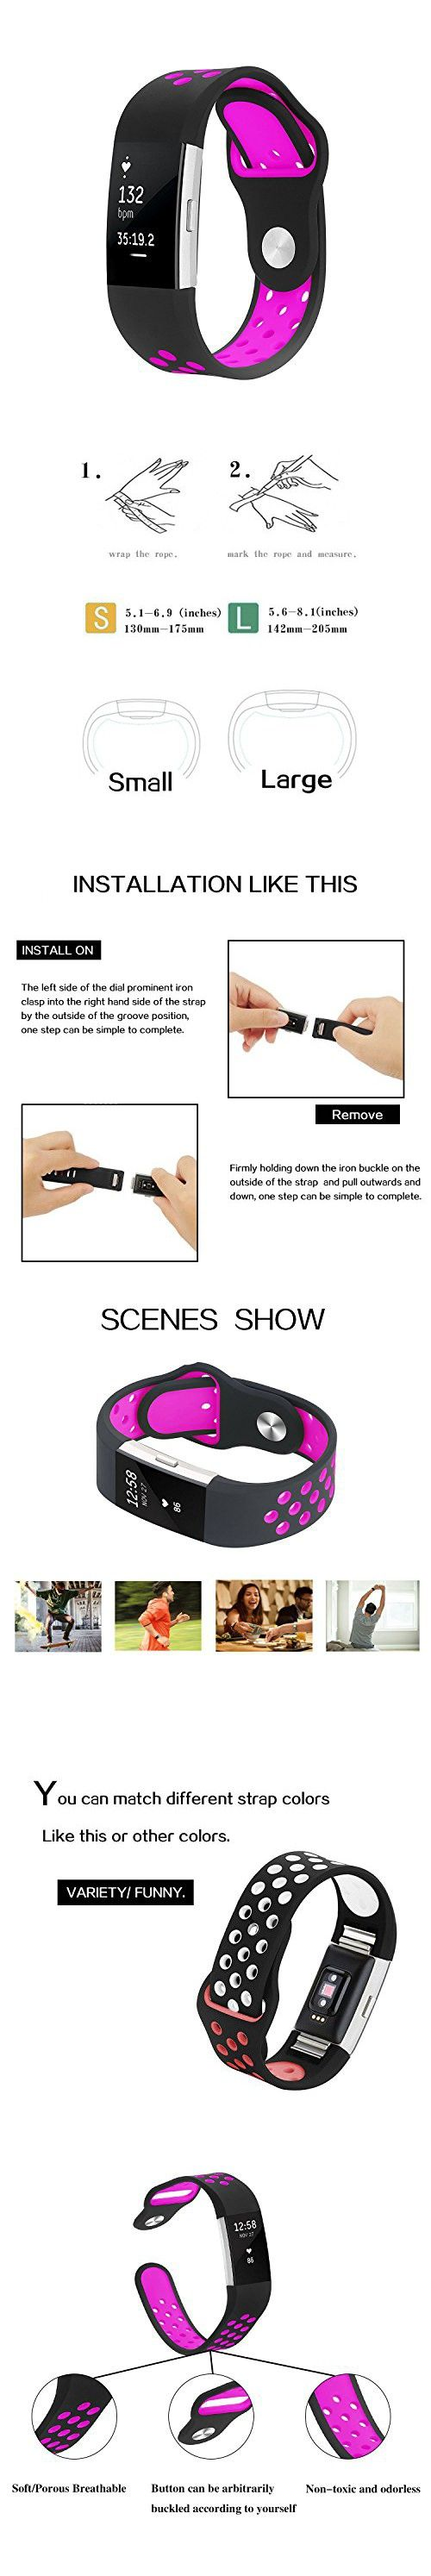 Bepack Band for Fitbit Charge 2, Silica gel Soft Silicone Adjustable Replacement Wristband for Fitbit Charge 2 Smartwatch Heart Rate Fitness Wristband